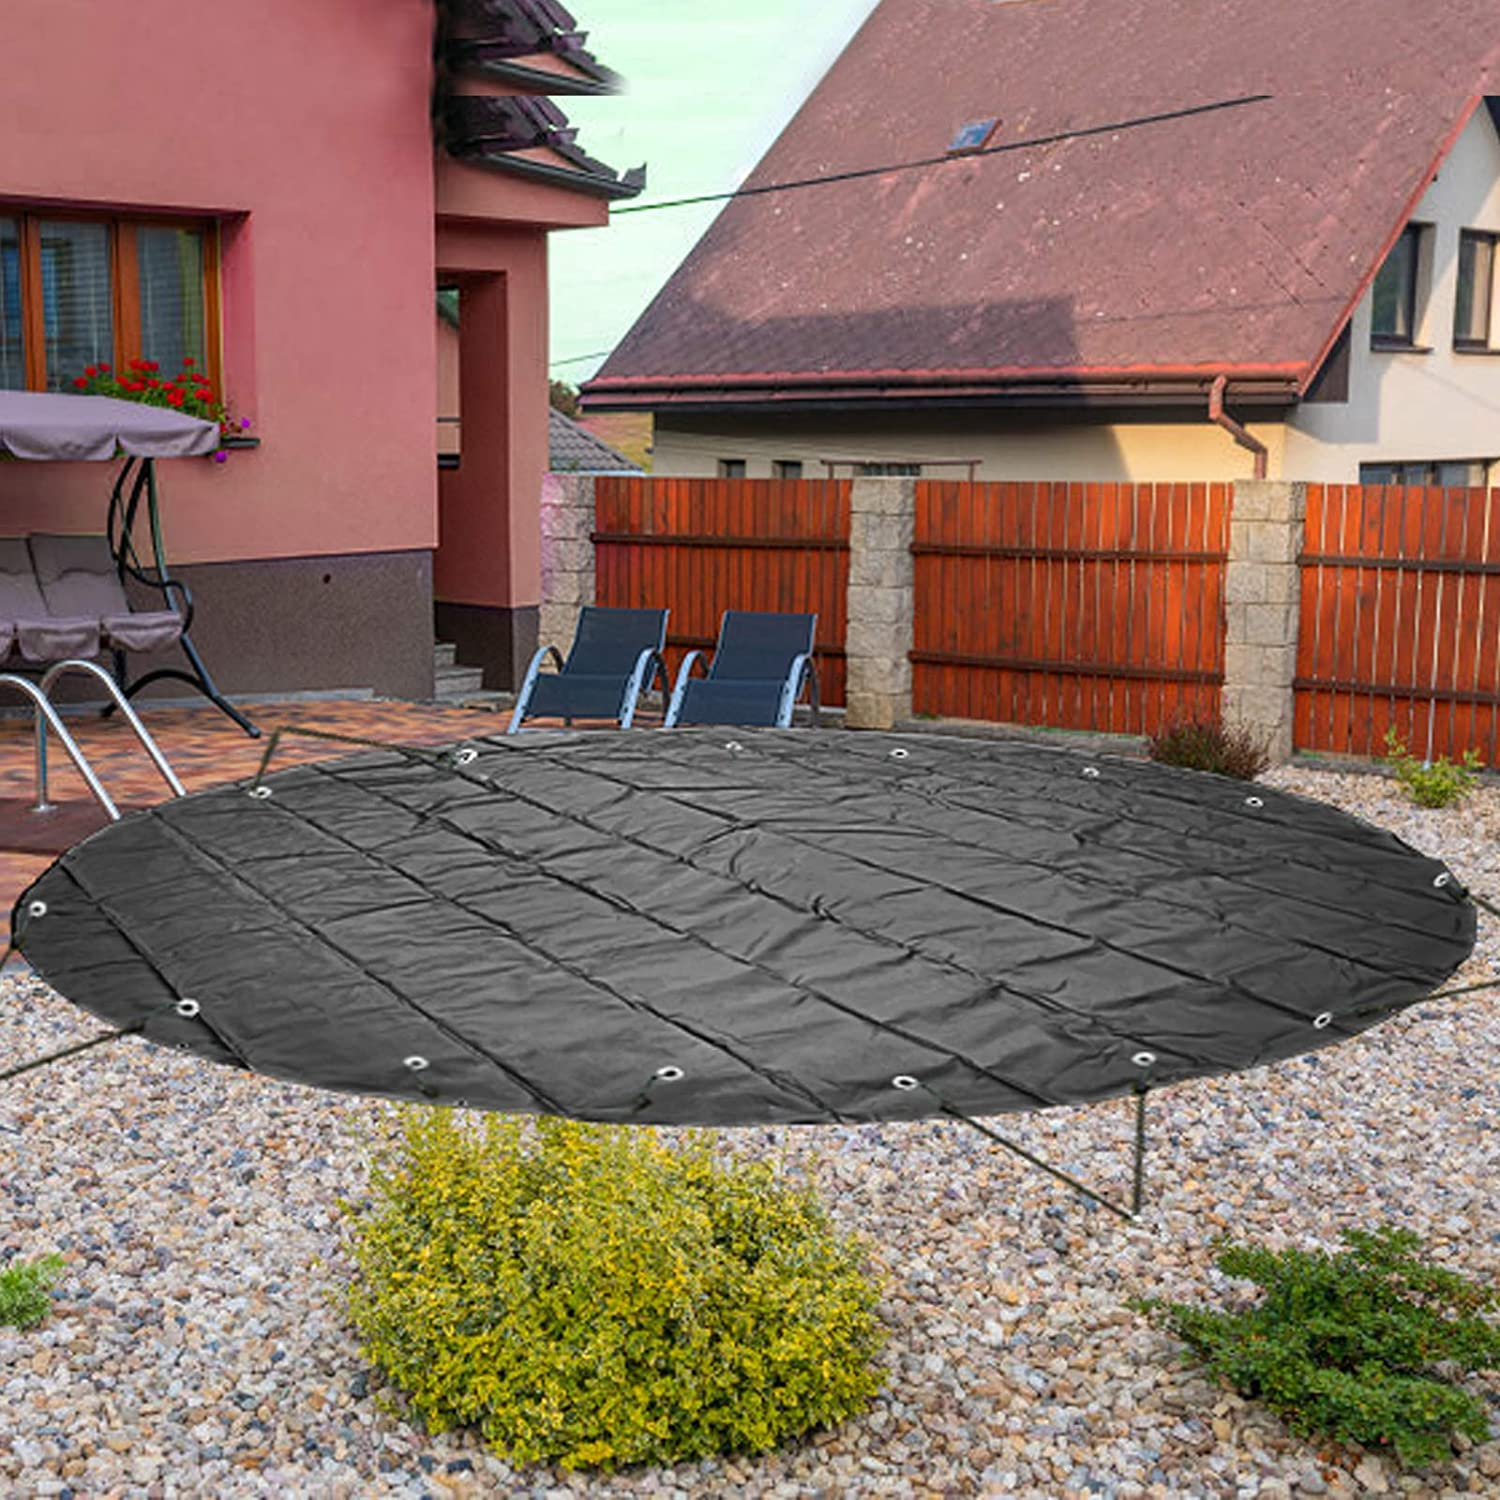 VEVOR Pool Surprise price Safety Cover 13 ft Max 78% OFF Charco In-ground Dia.